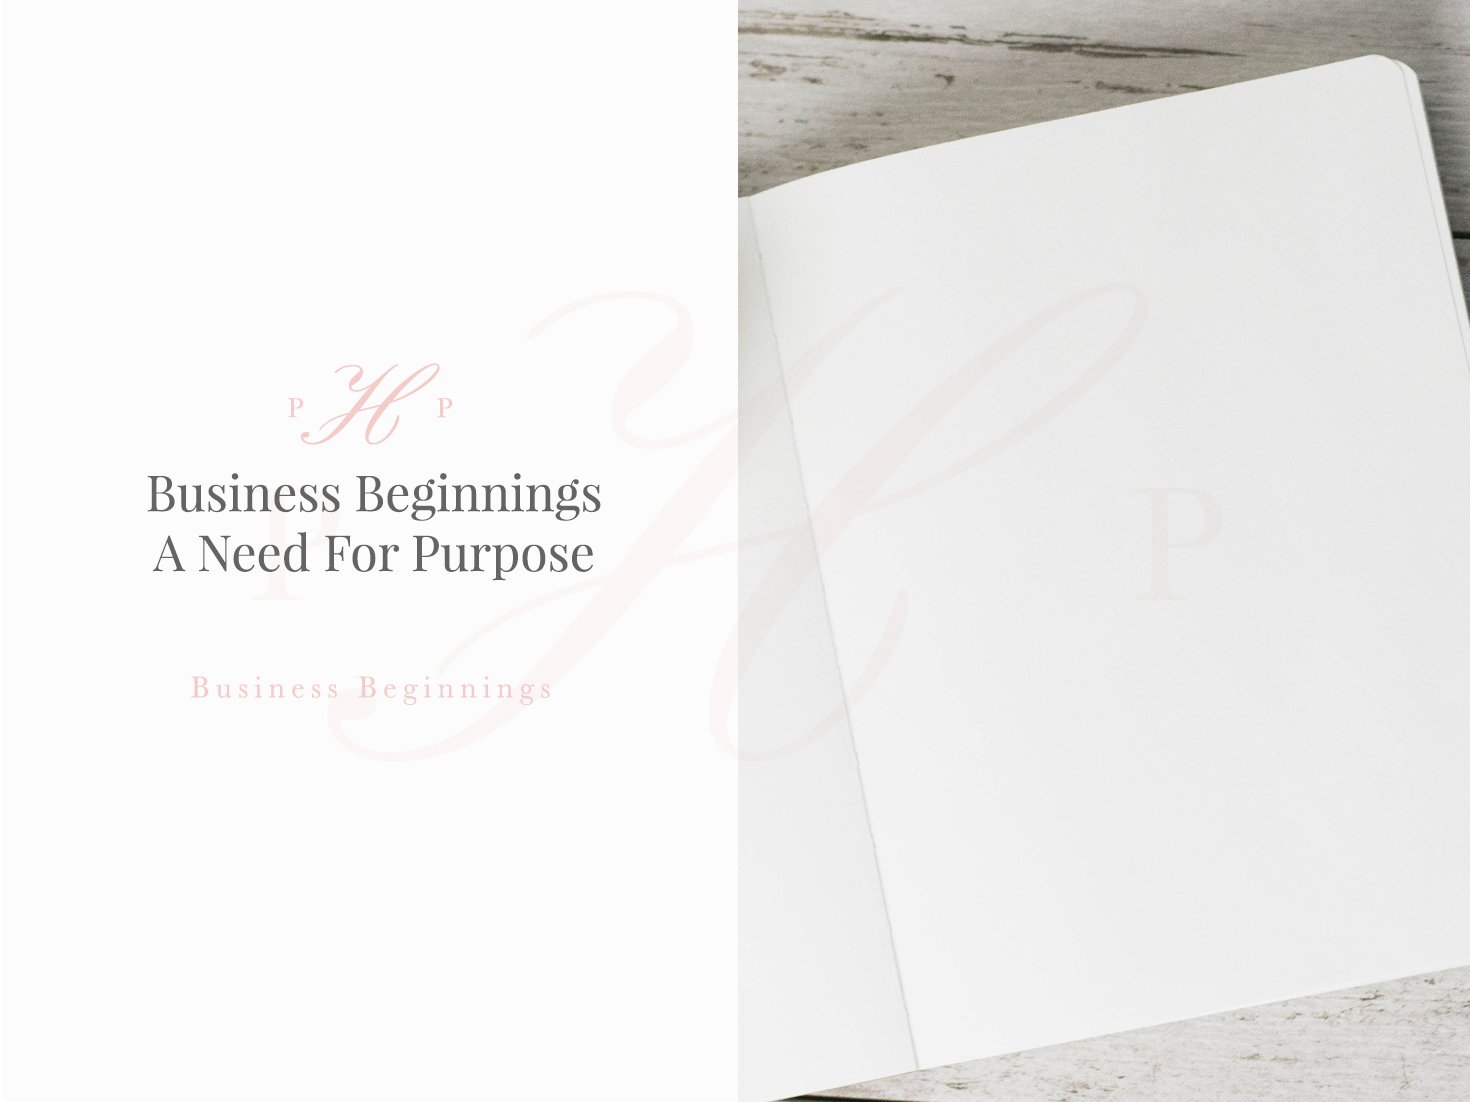 Business Beginnings - A Need For Purpose